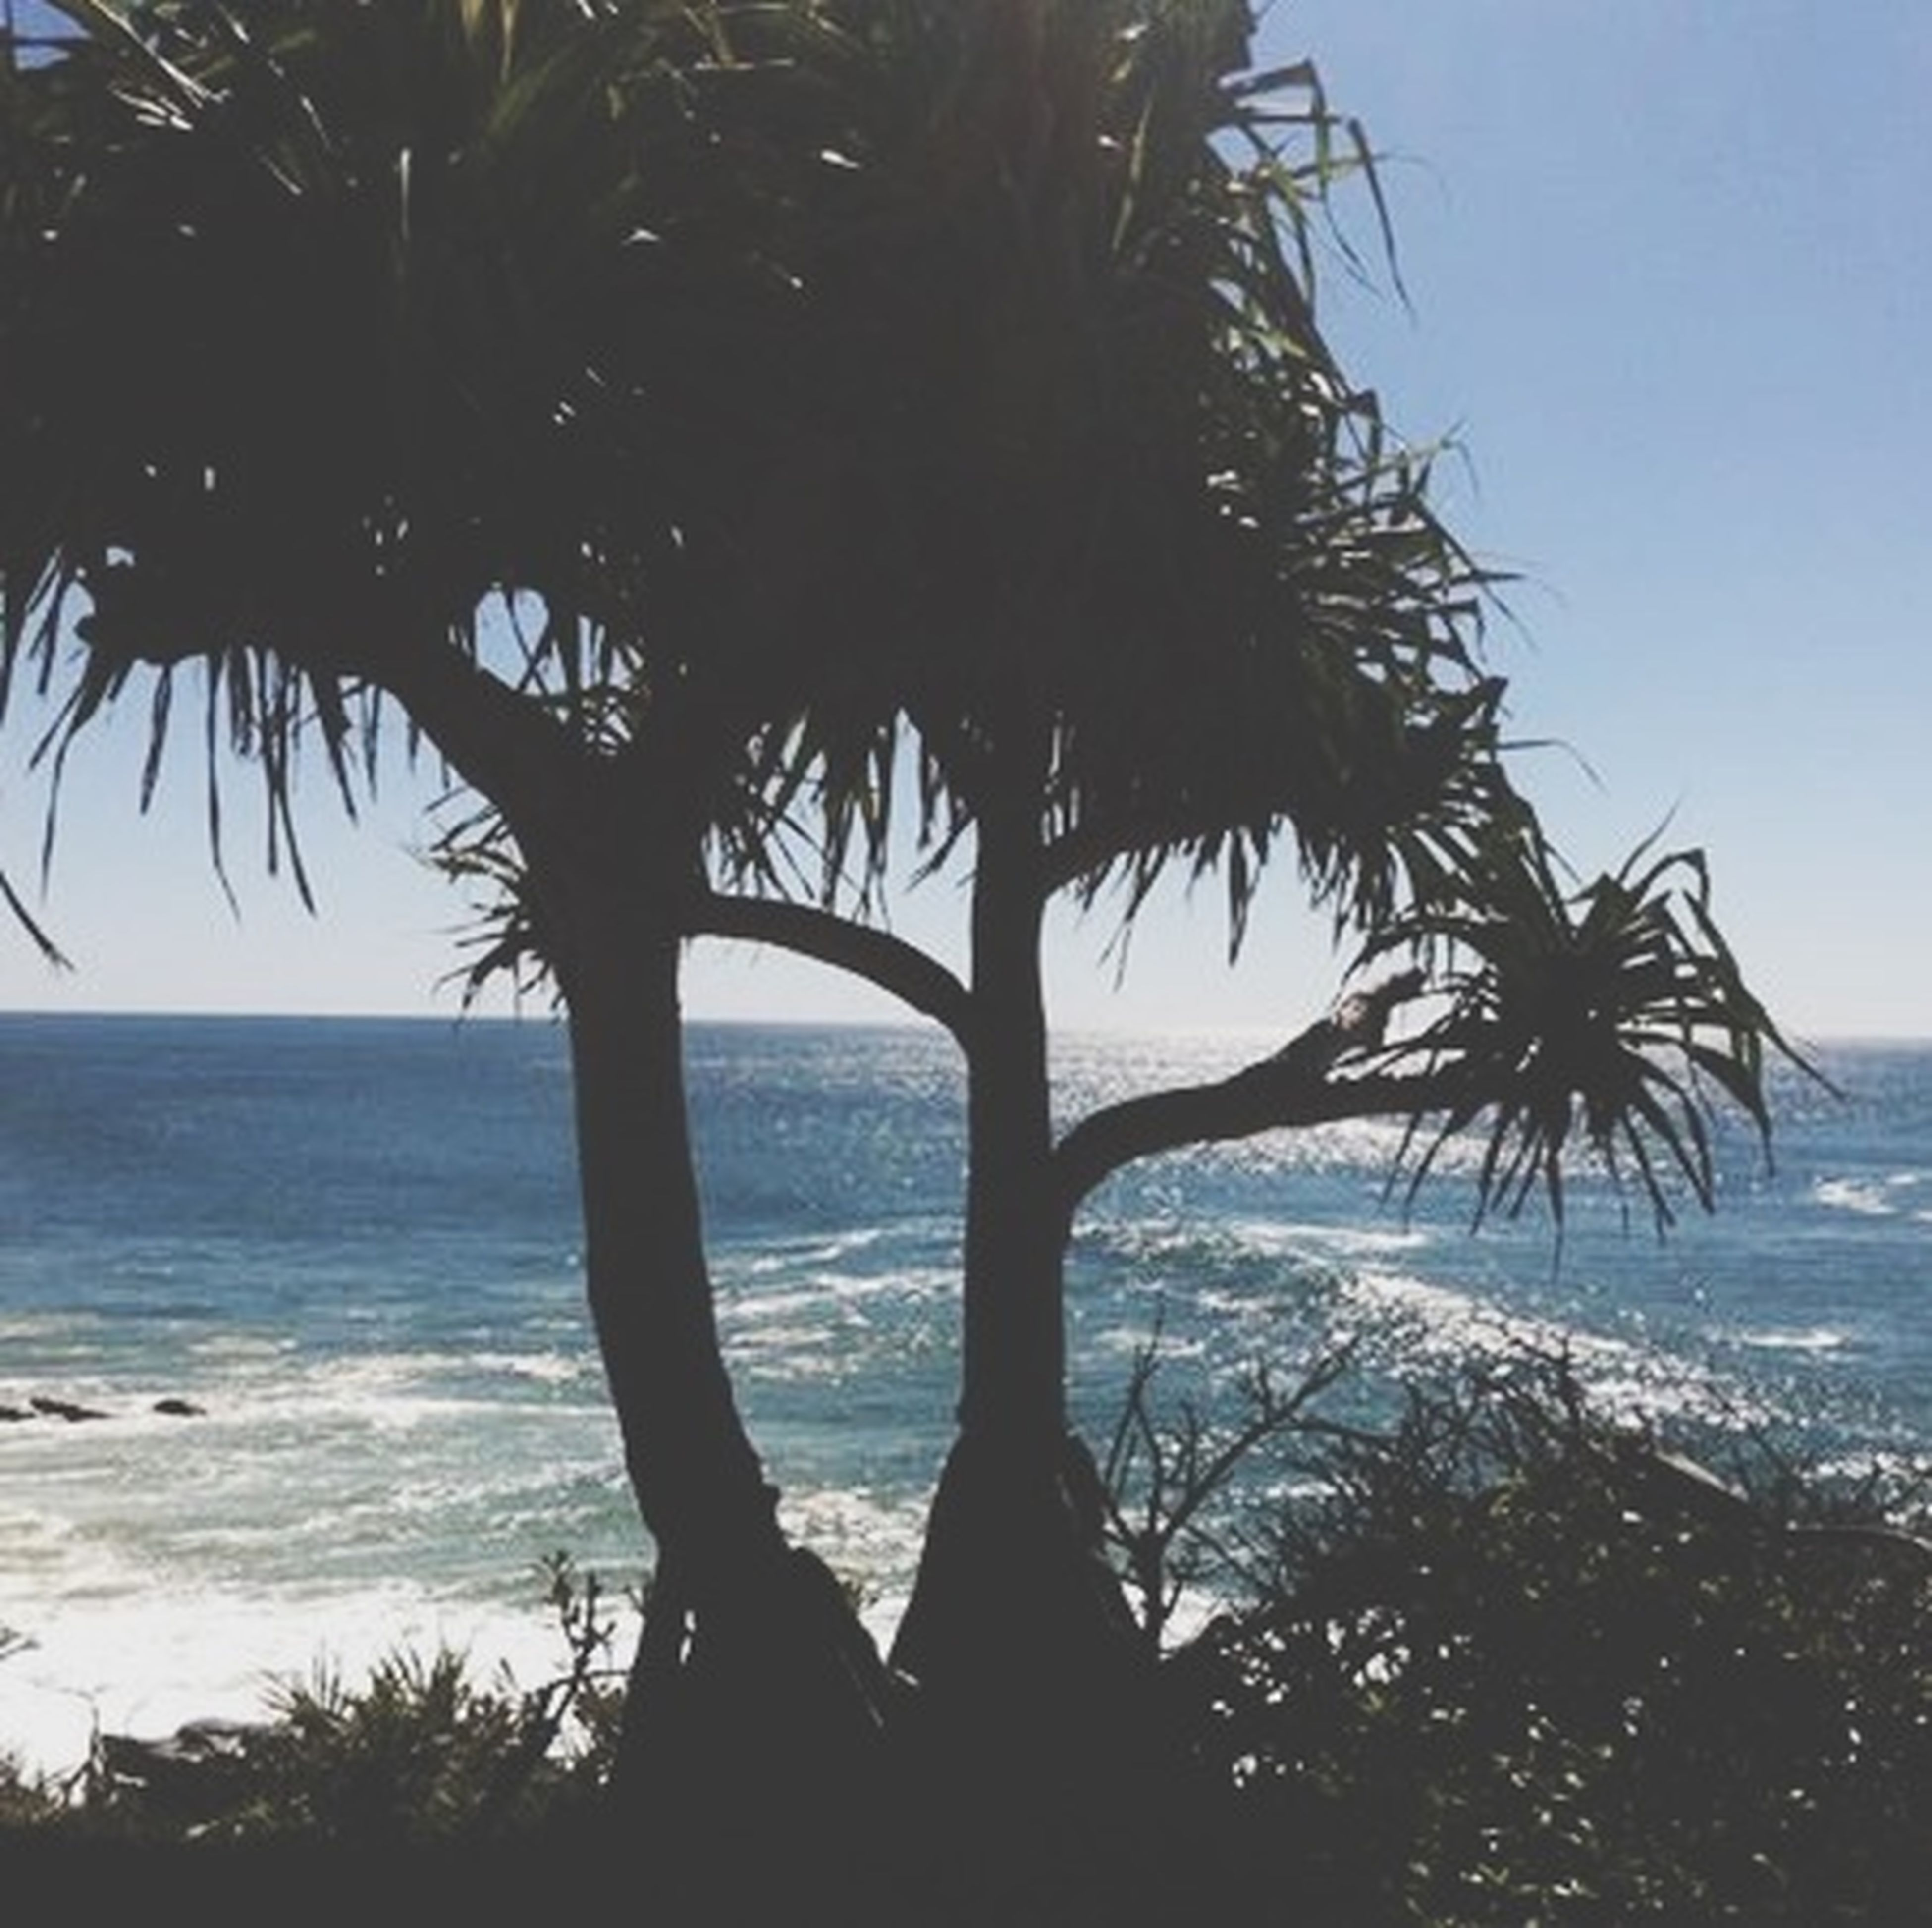 sea, palm tree, horizon over water, water, beach, tree, tranquility, tranquil scene, scenics, beauty in nature, shore, nature, sky, tree trunk, growth, silhouette, clear sky, idyllic, outdoors, branch